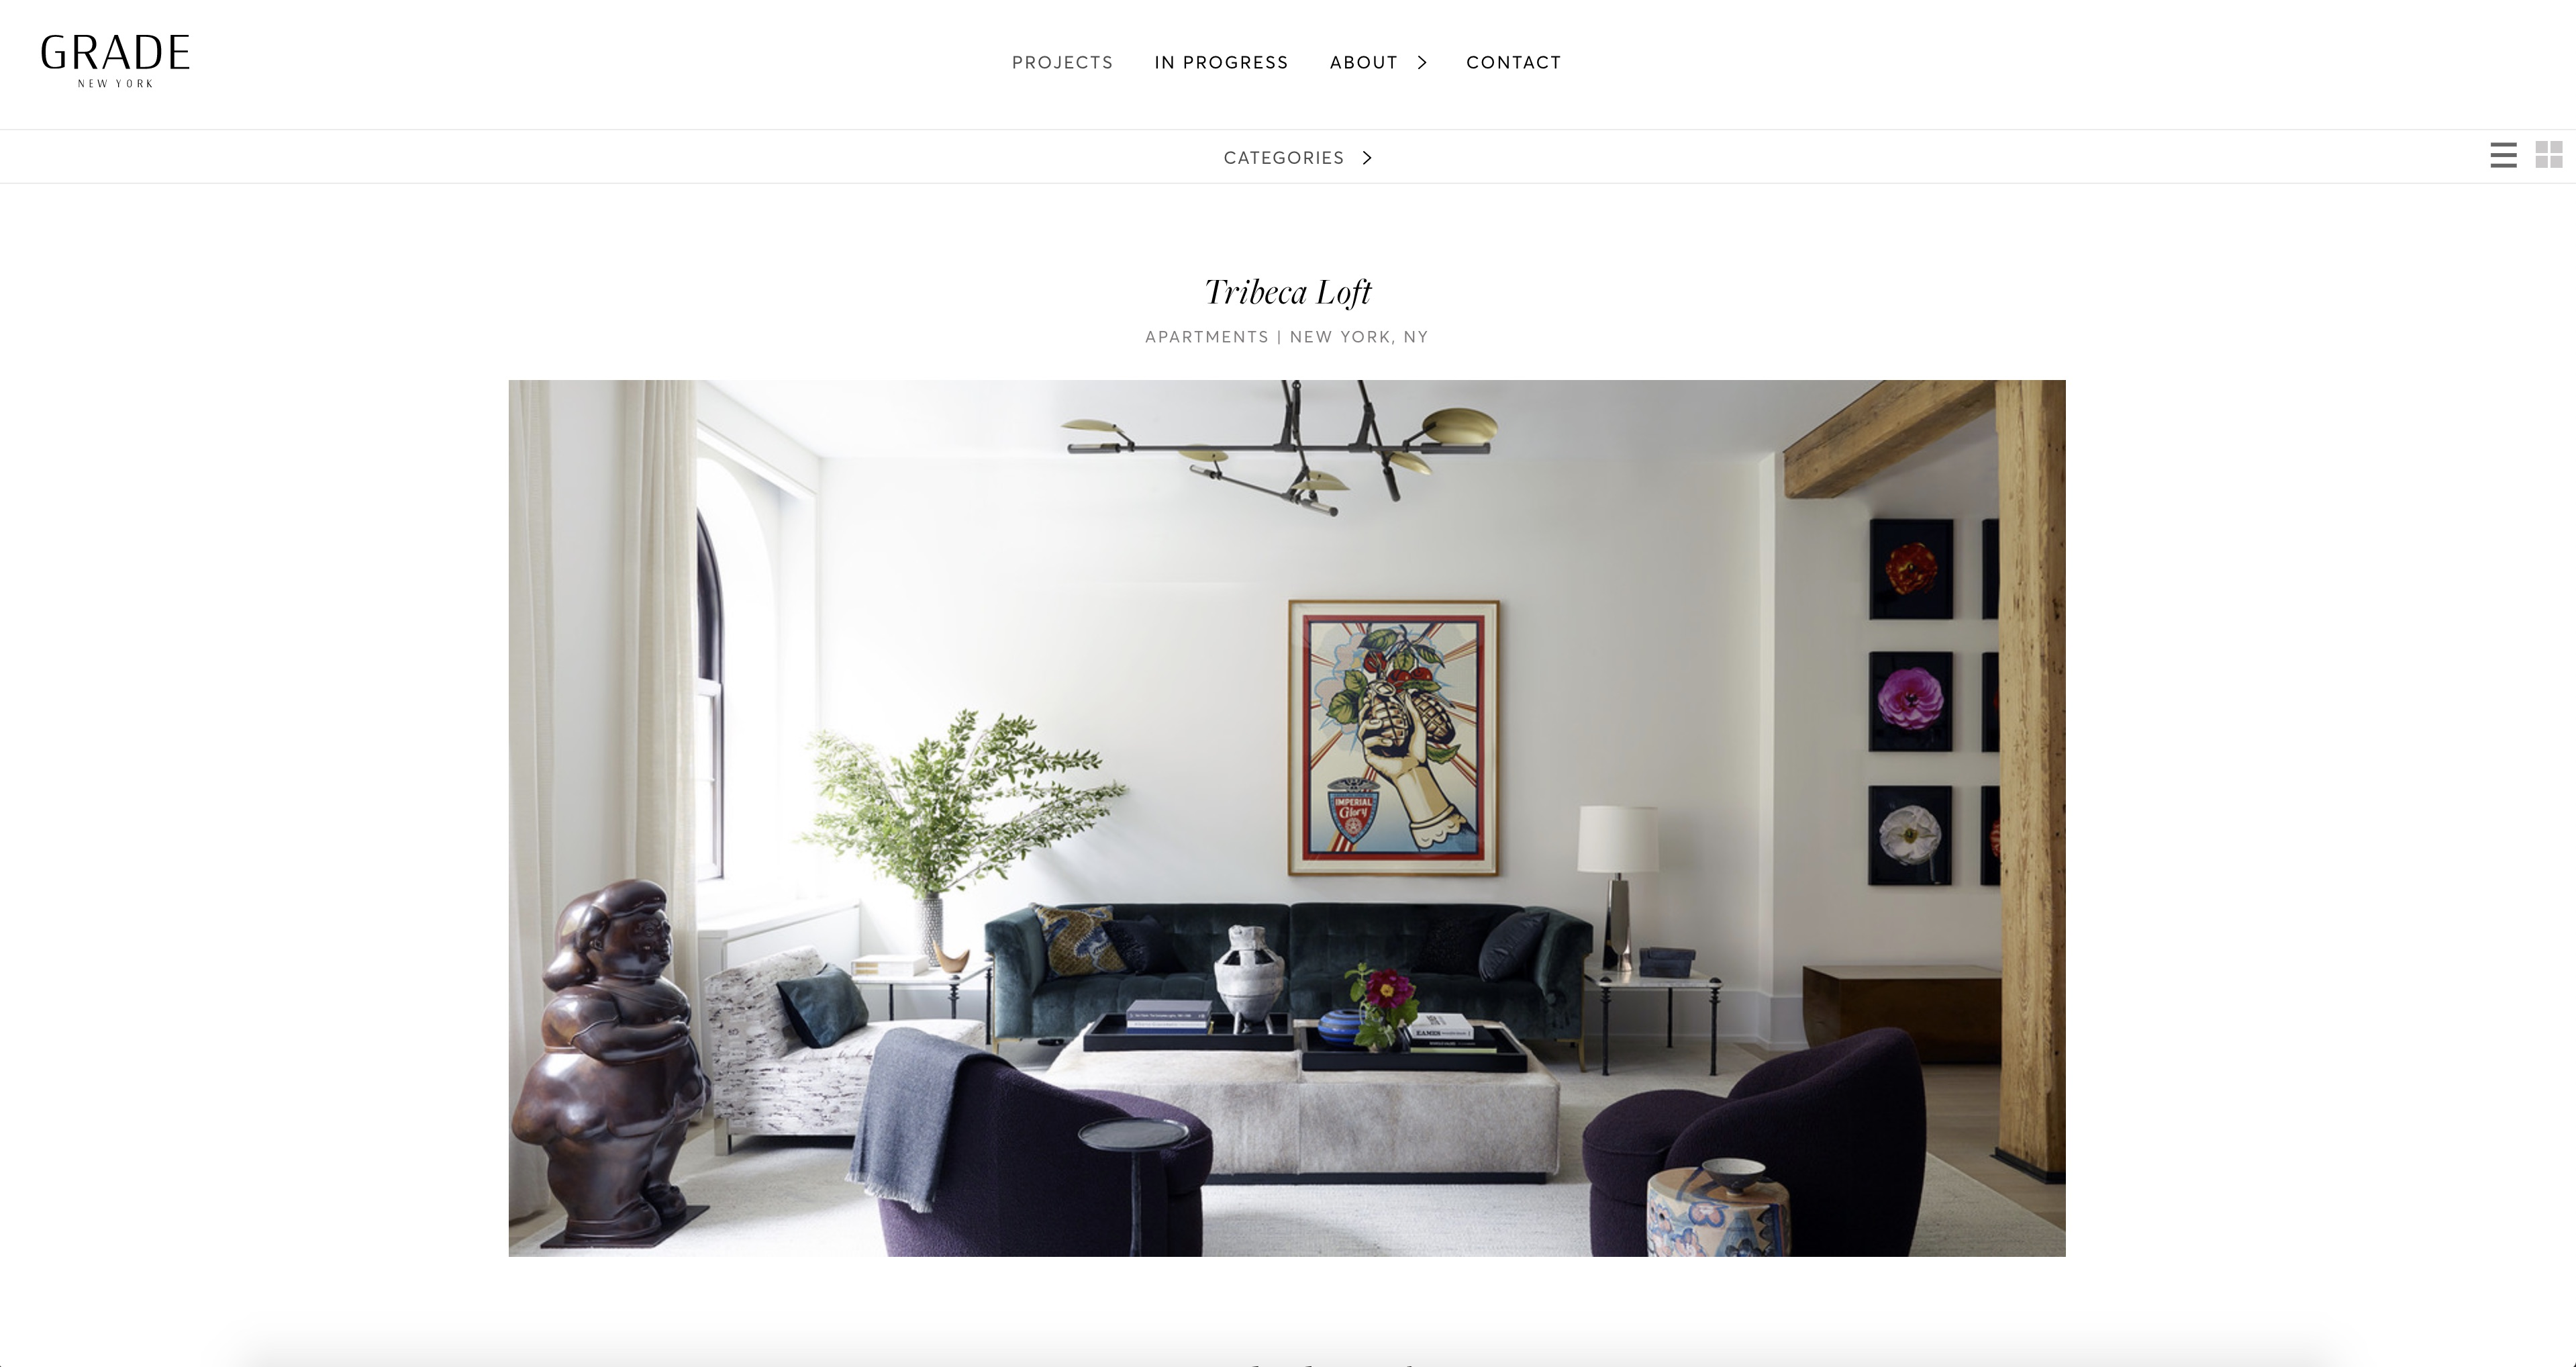 Project page of Grade New York's website that was designed and developed by DTE studio.